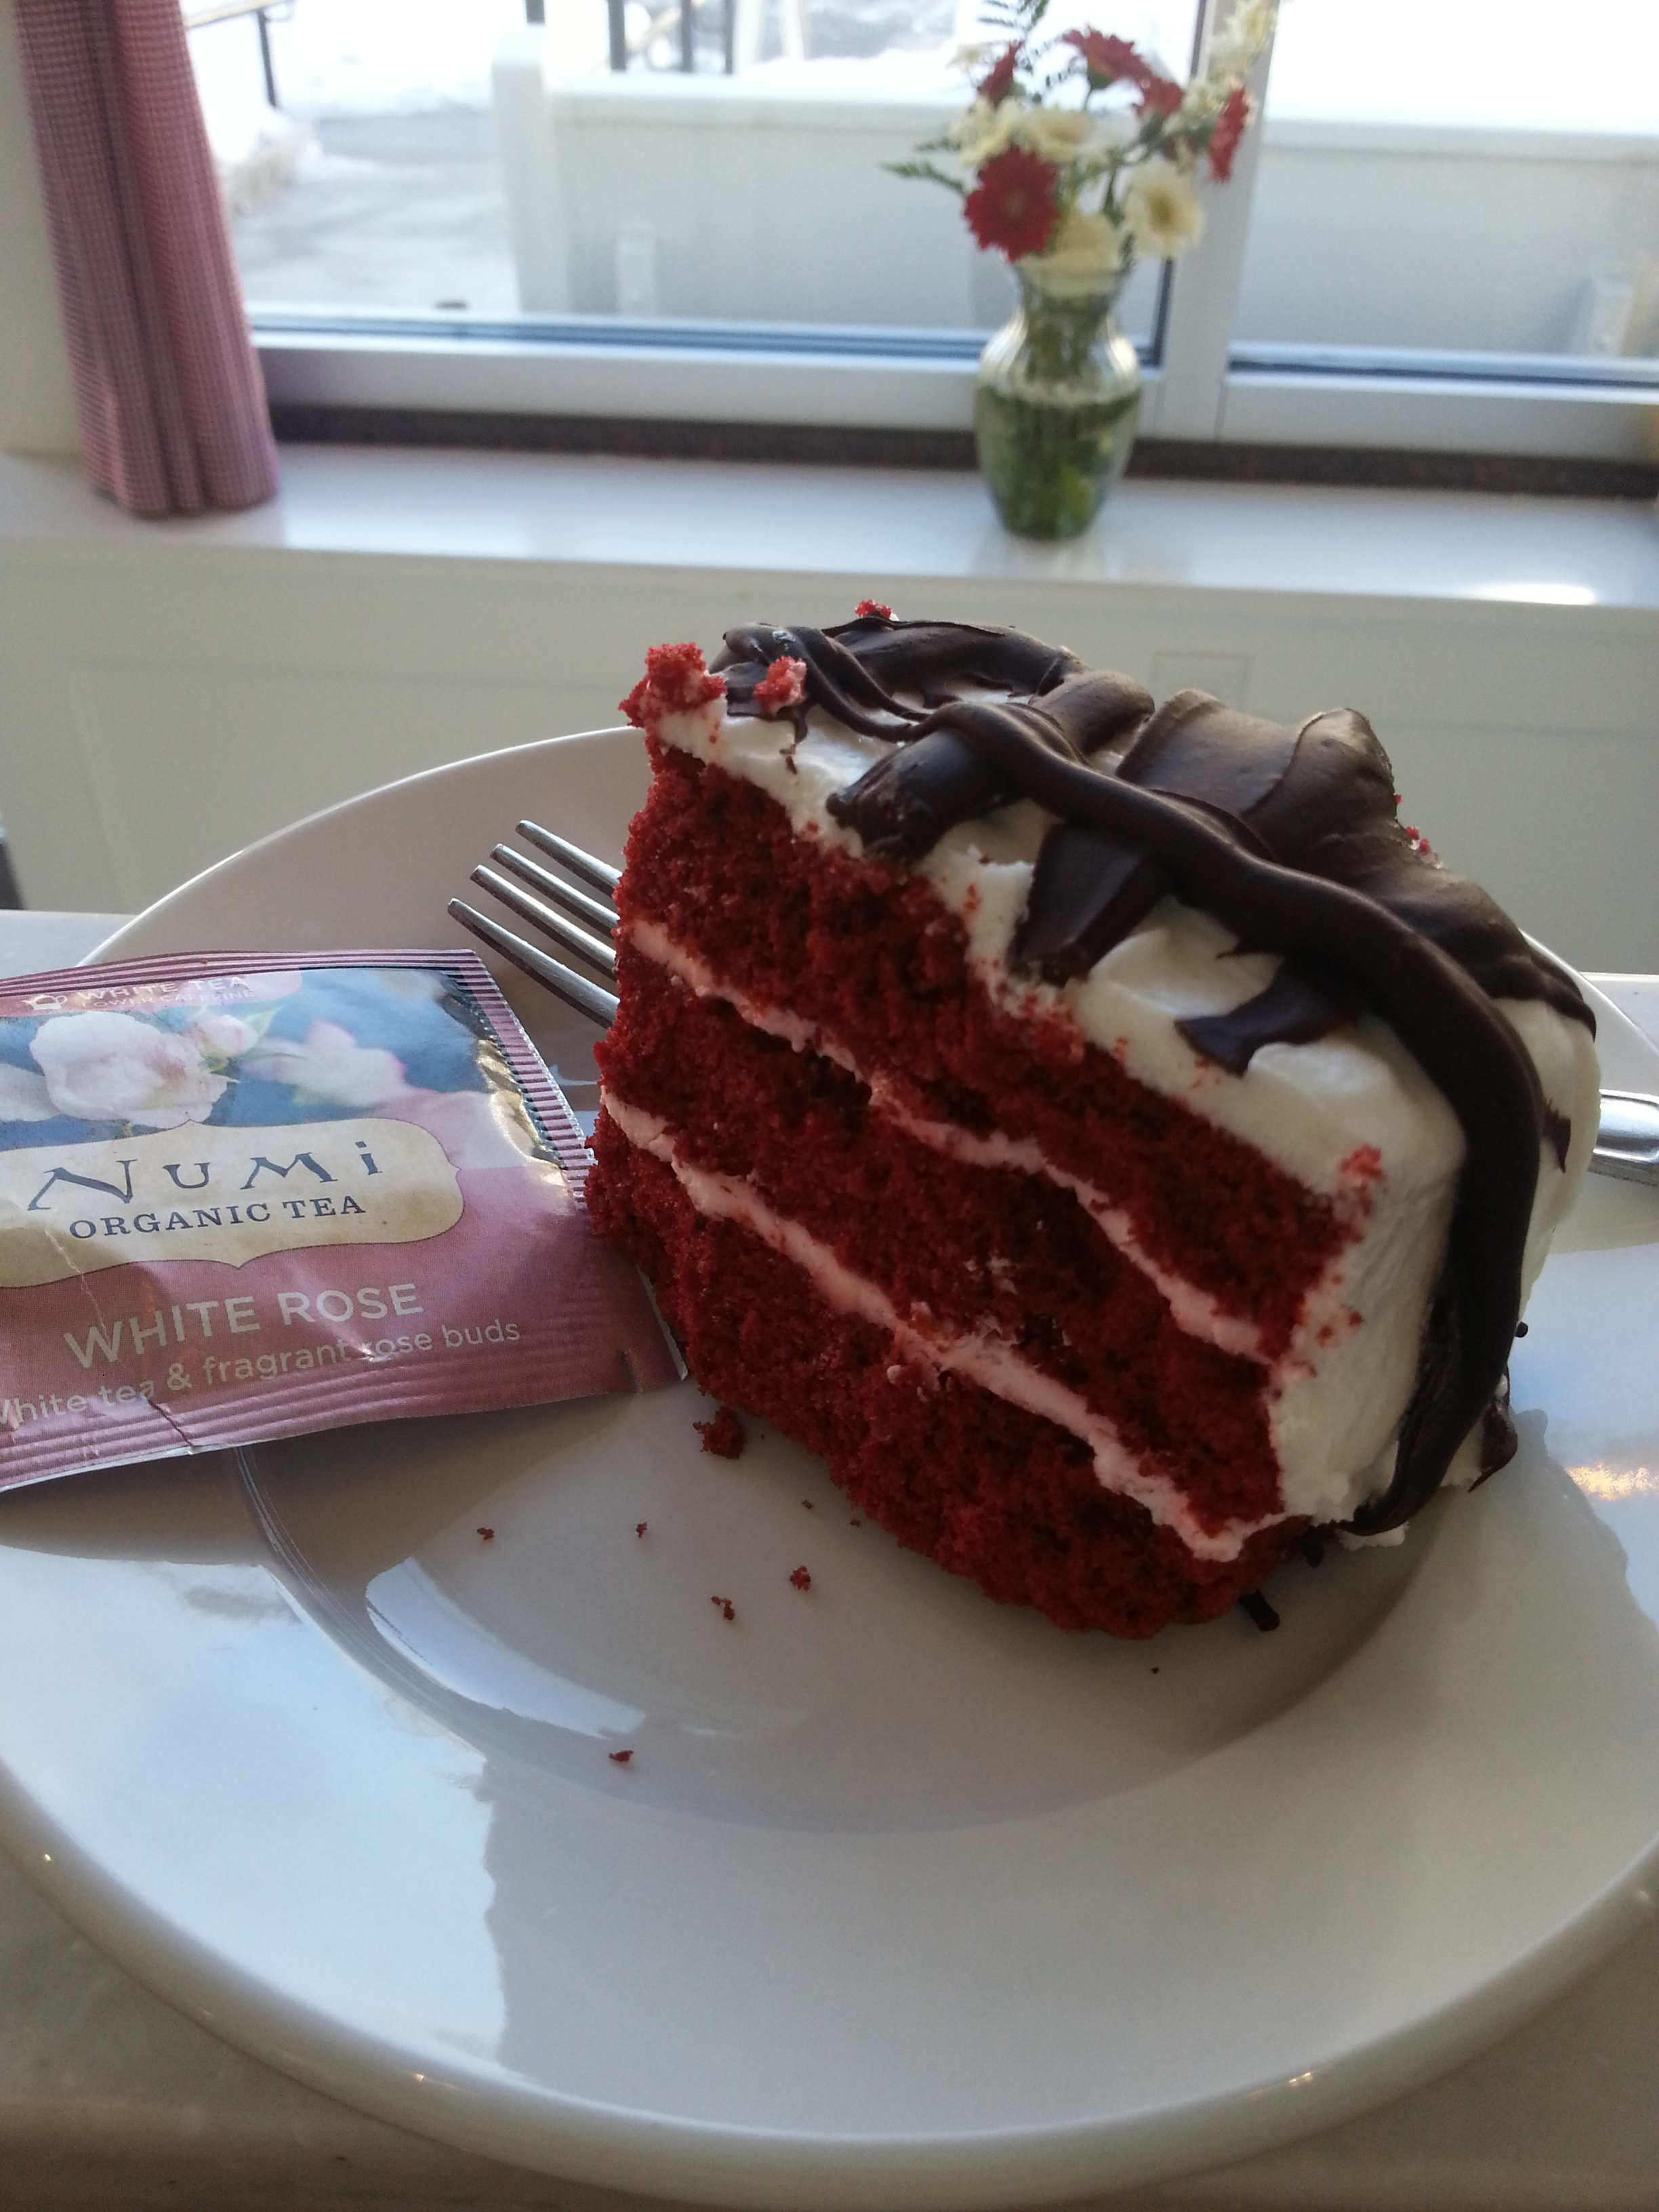 Numi Fair Trade Organic White Rose Tea and Red Velvet Cake with Whole Foods' Semi-Sweet Chocolate!